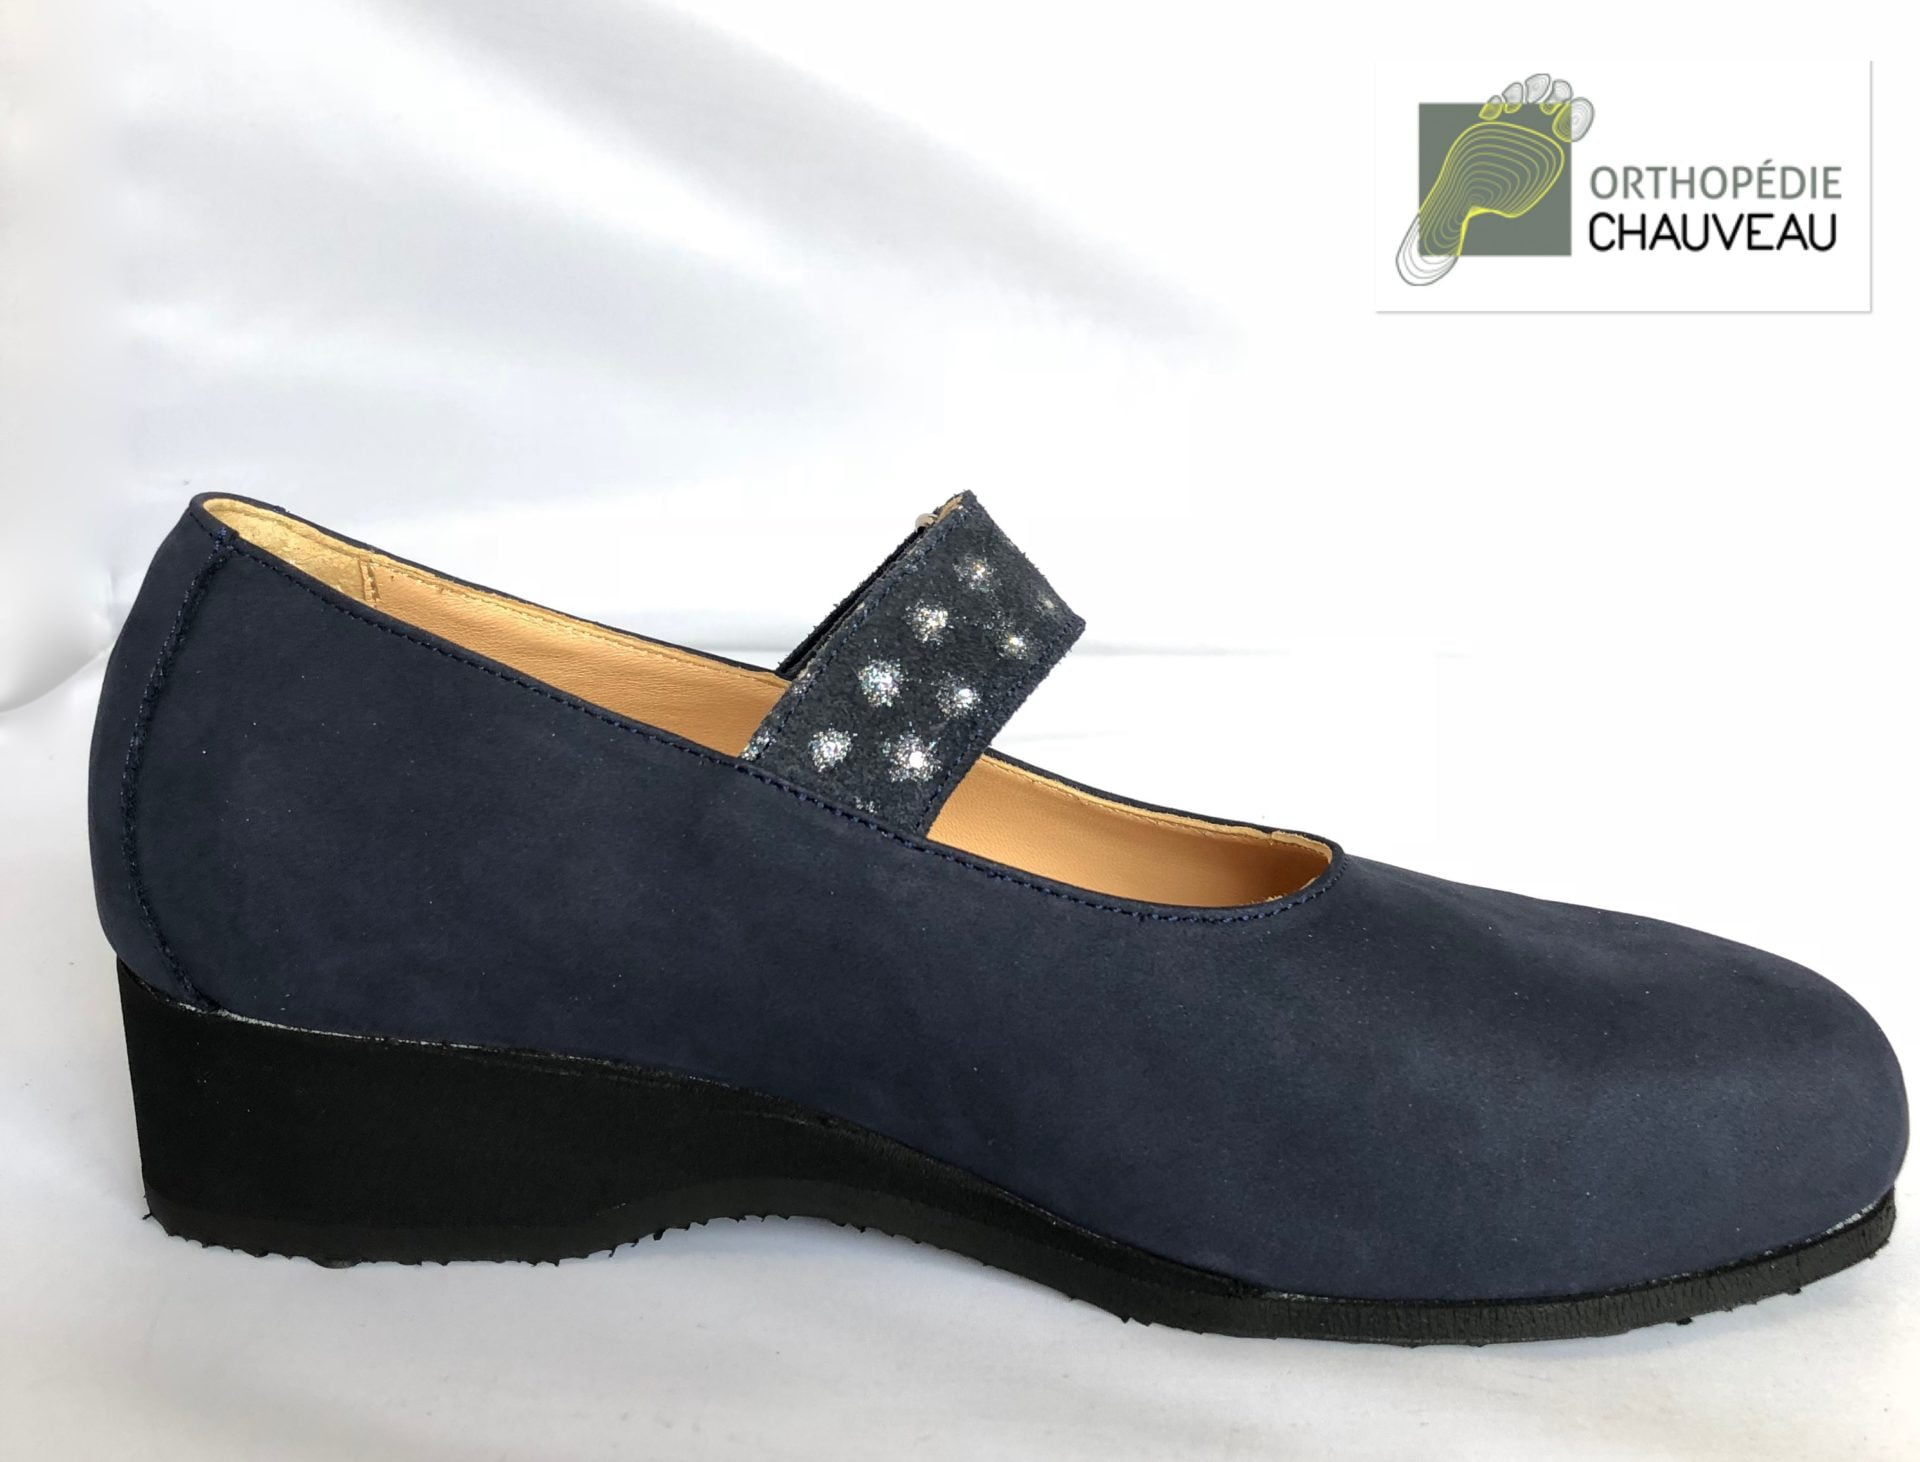 chaussures orthopediques Rennes ballerines